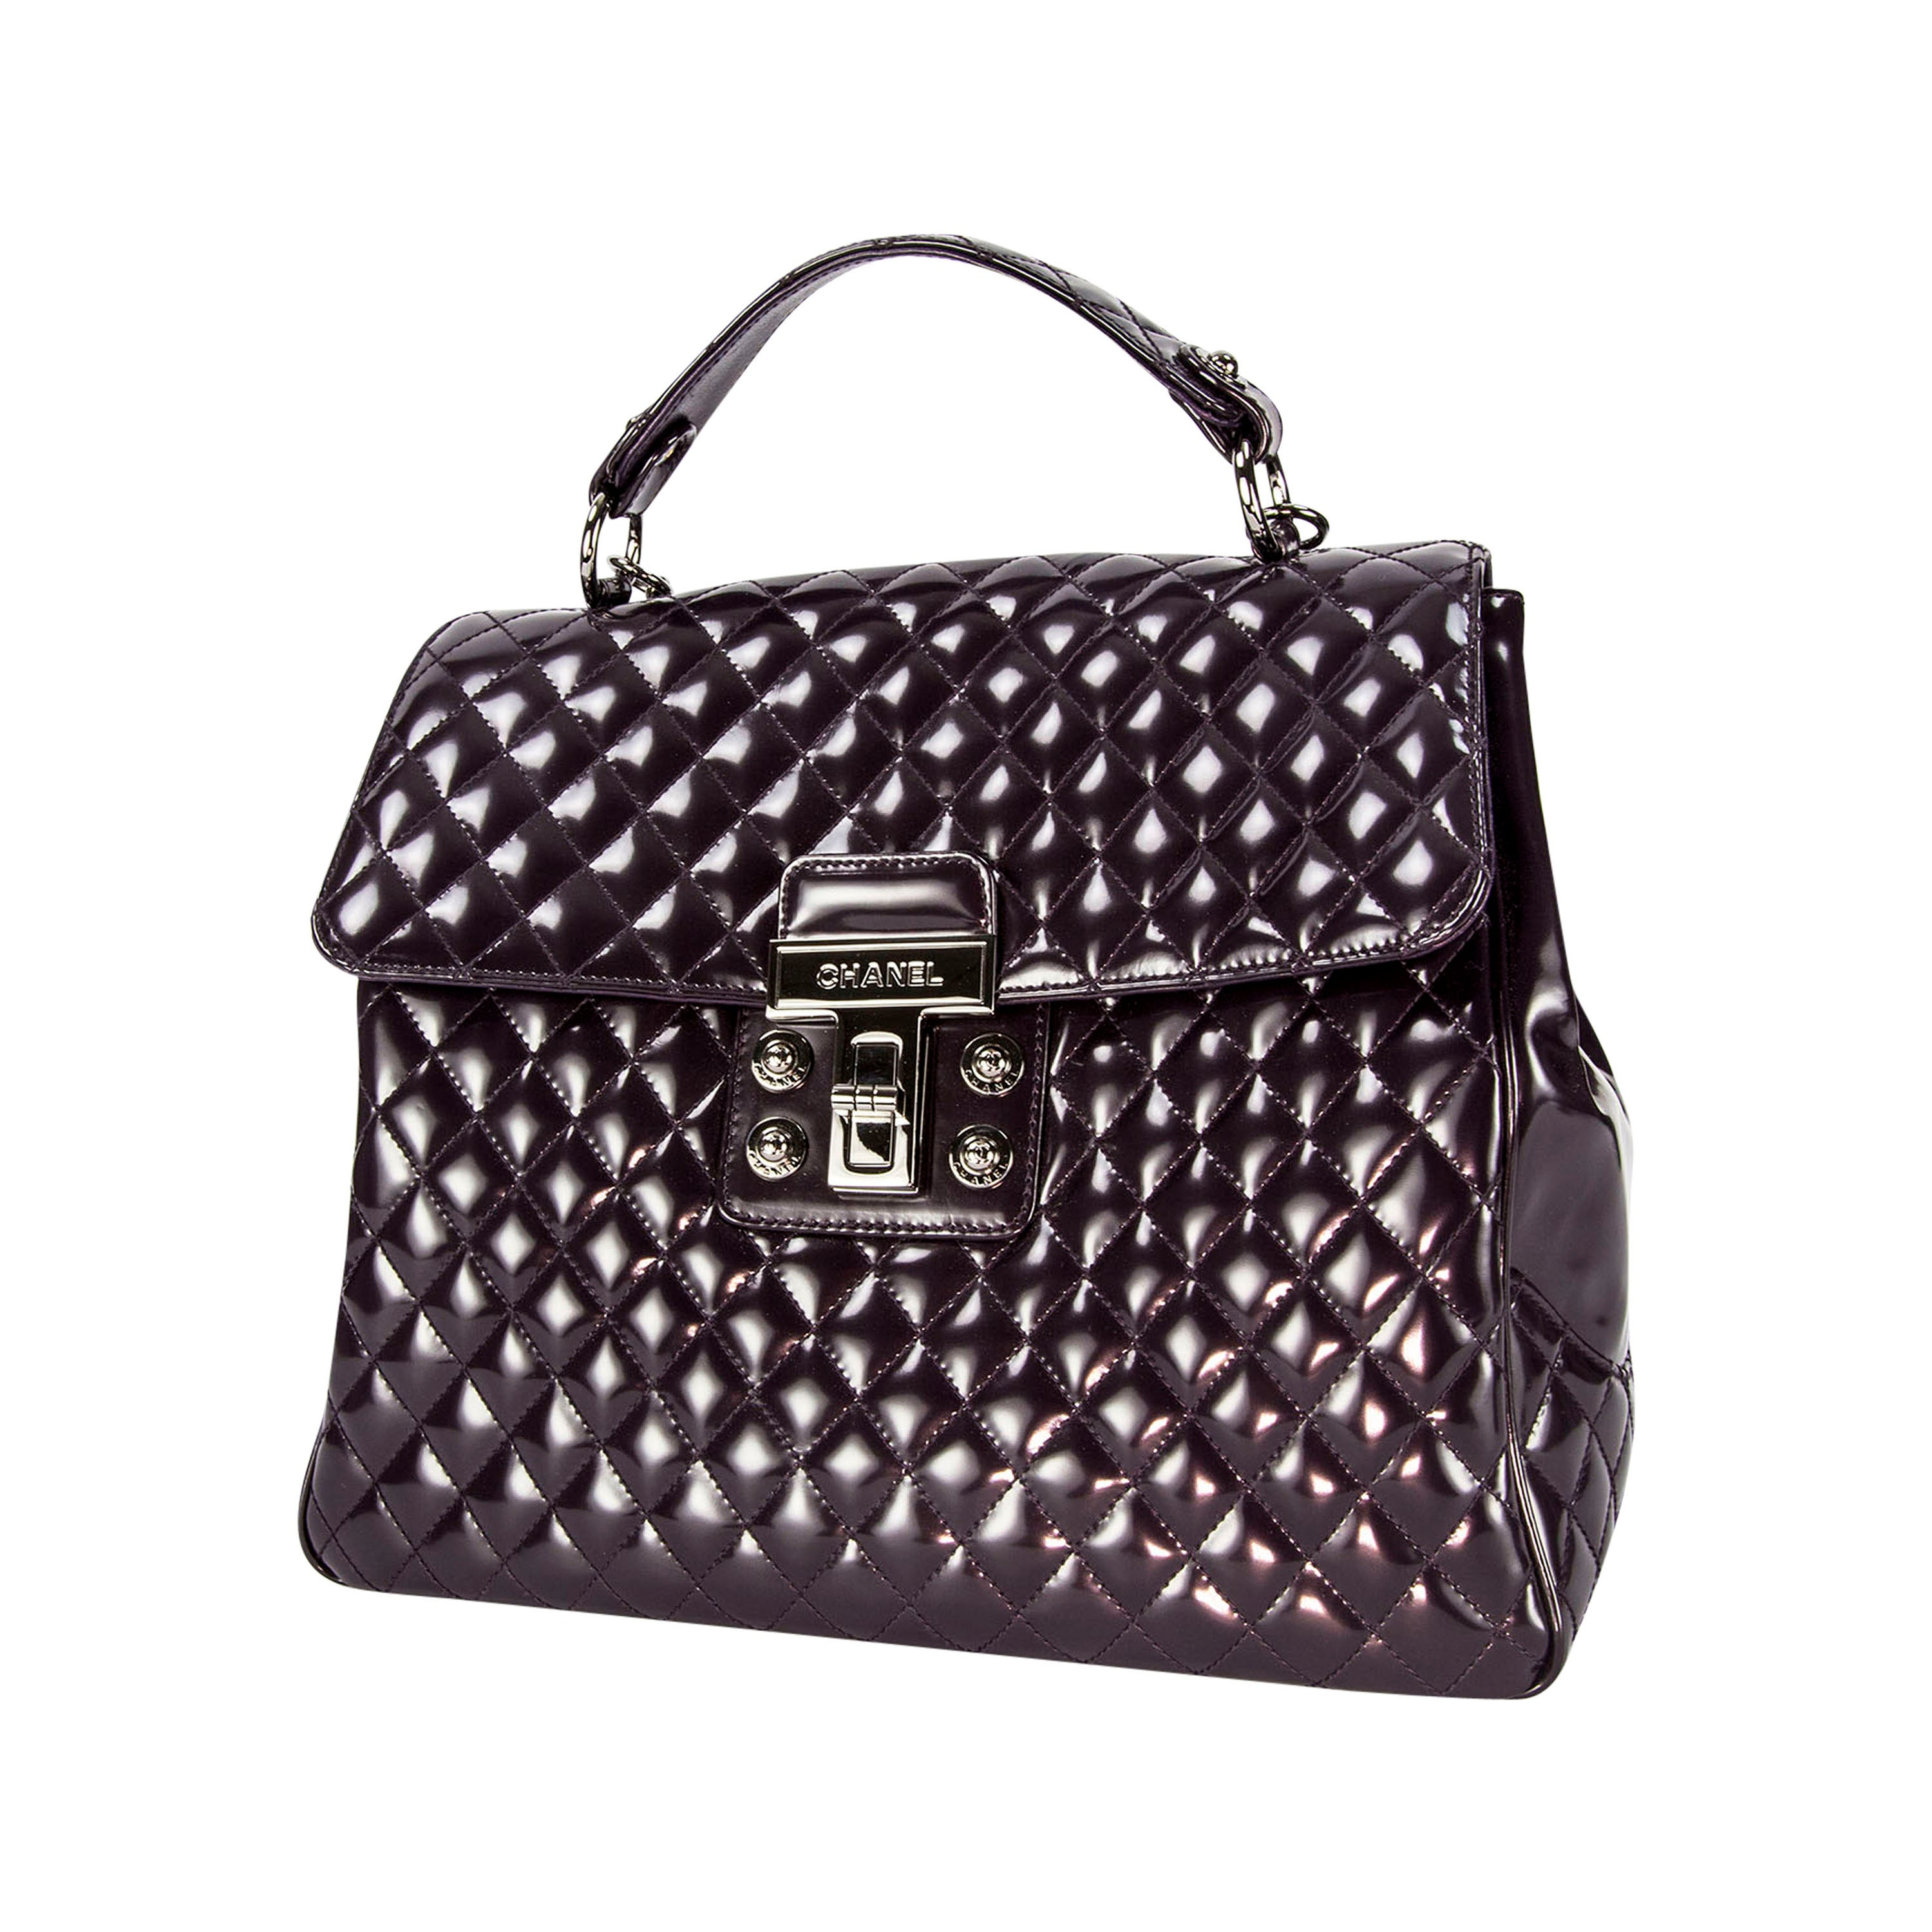 beb22453fa93 Chanel Vintage Large Patent Aubergine Tote Bag with Quilted Details For  Sale at 1stdibs